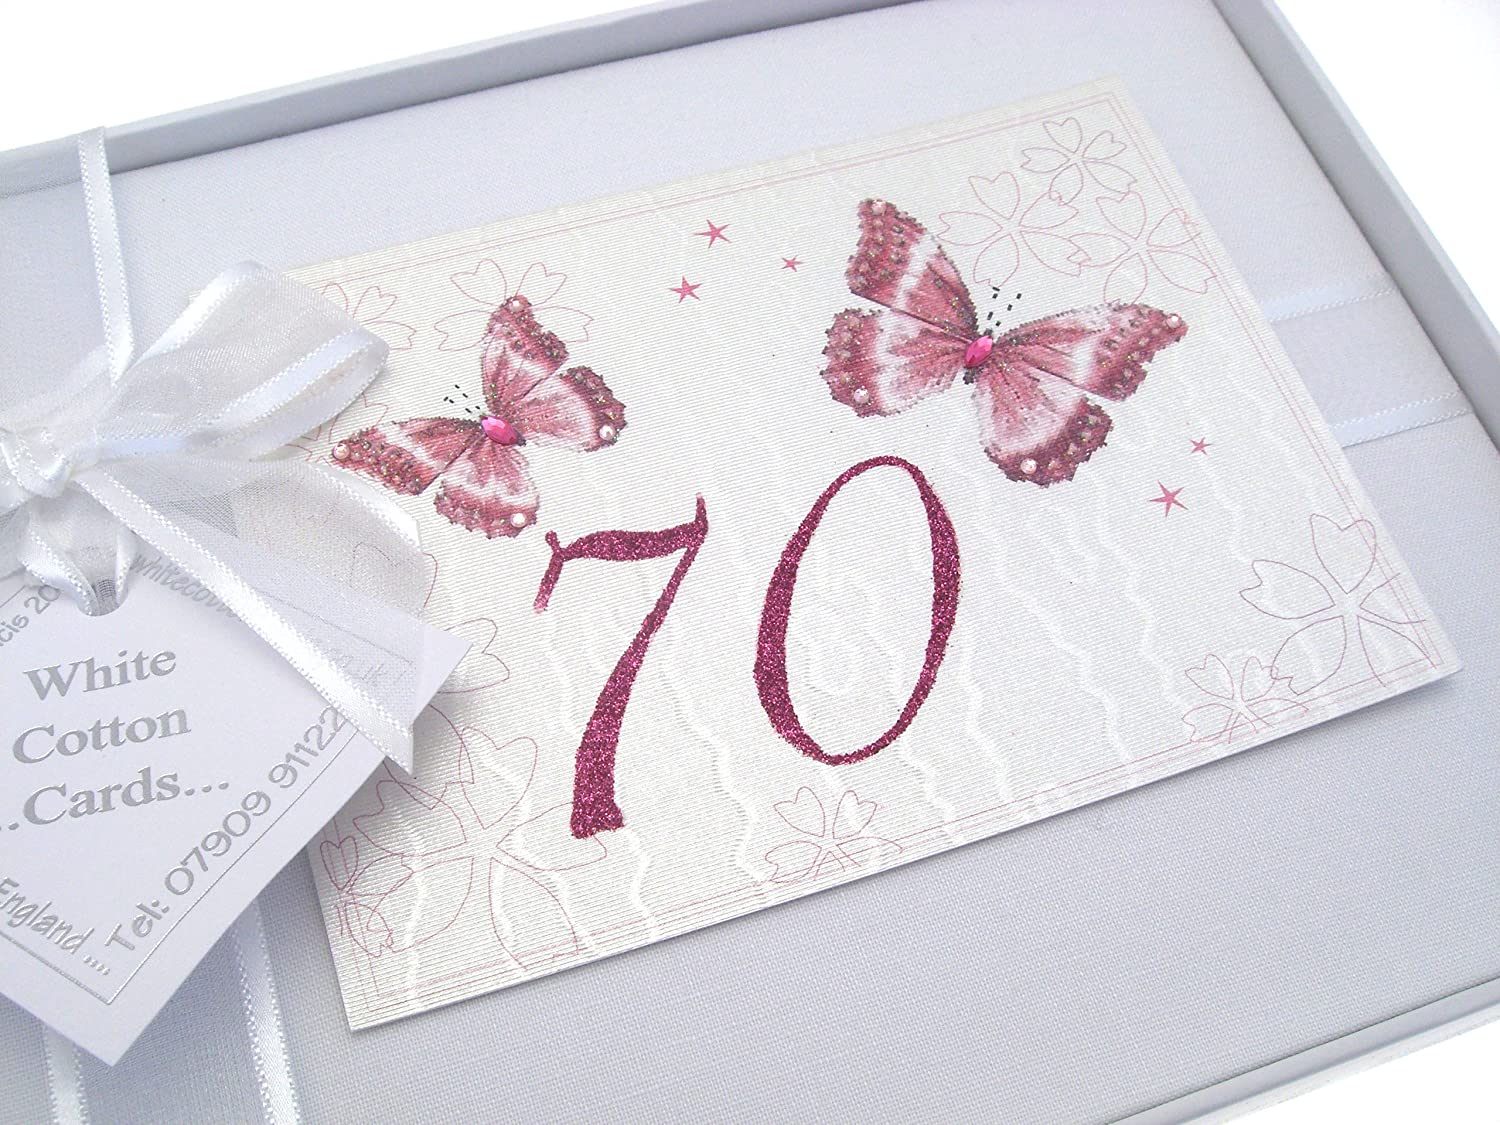 White Cotton Cards 70th Birthday Photo Album, Small, Butterfly   B0057DHC6K